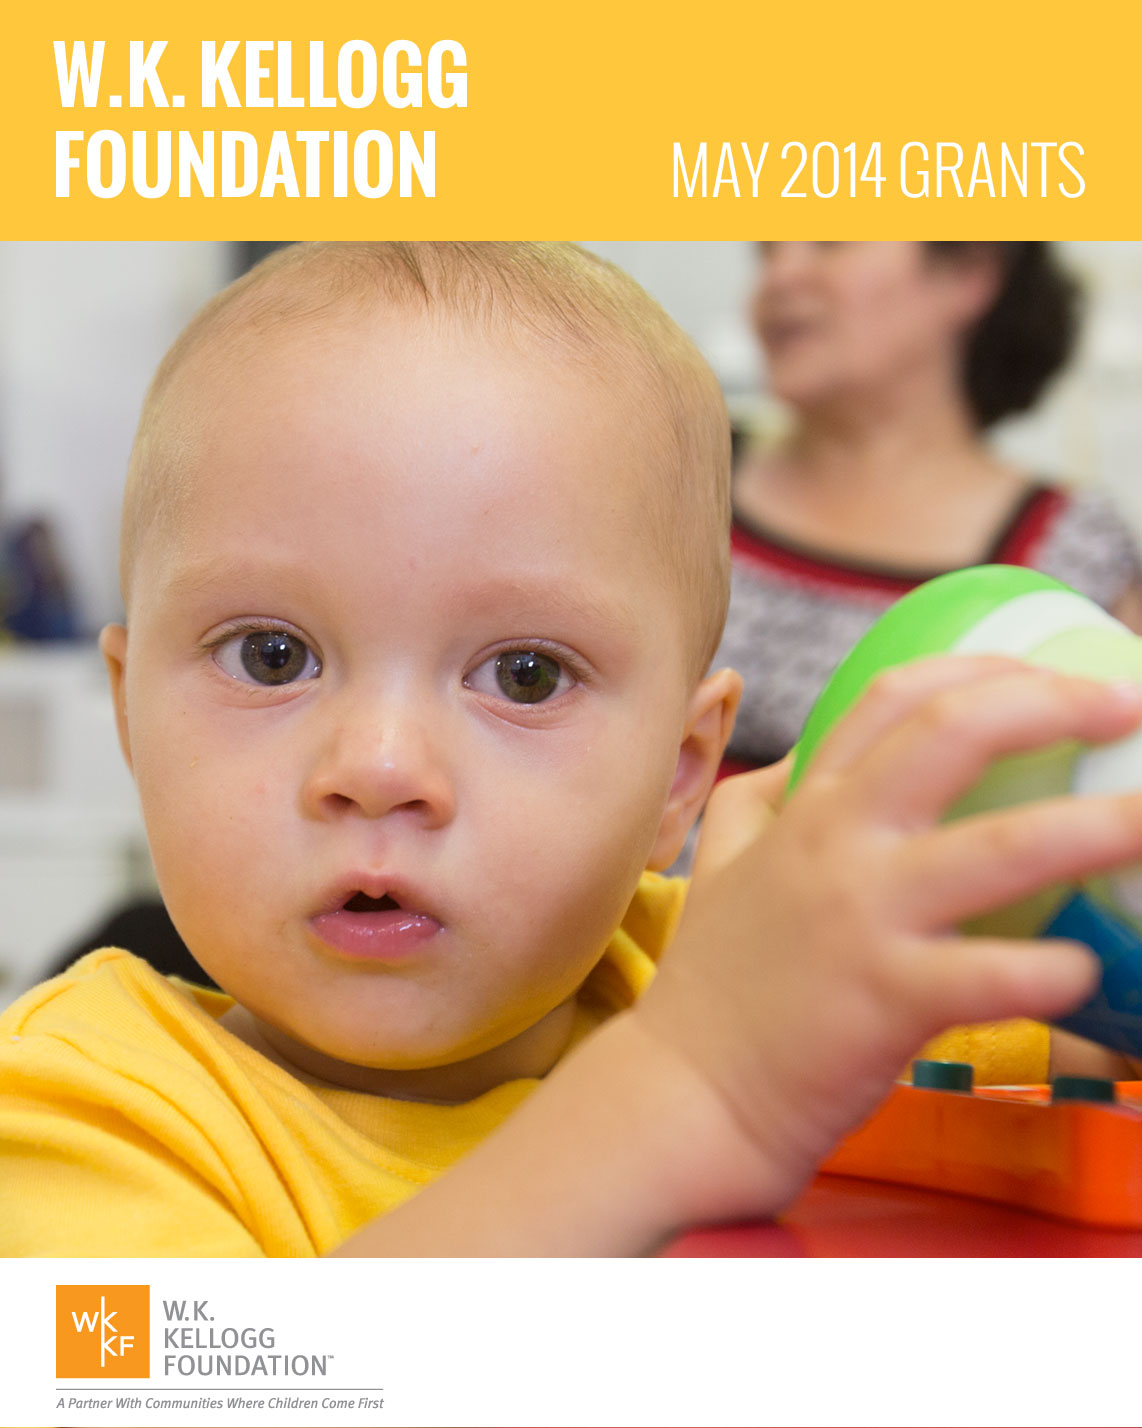 W.K. Kellogg Foundation Grants - May 2014